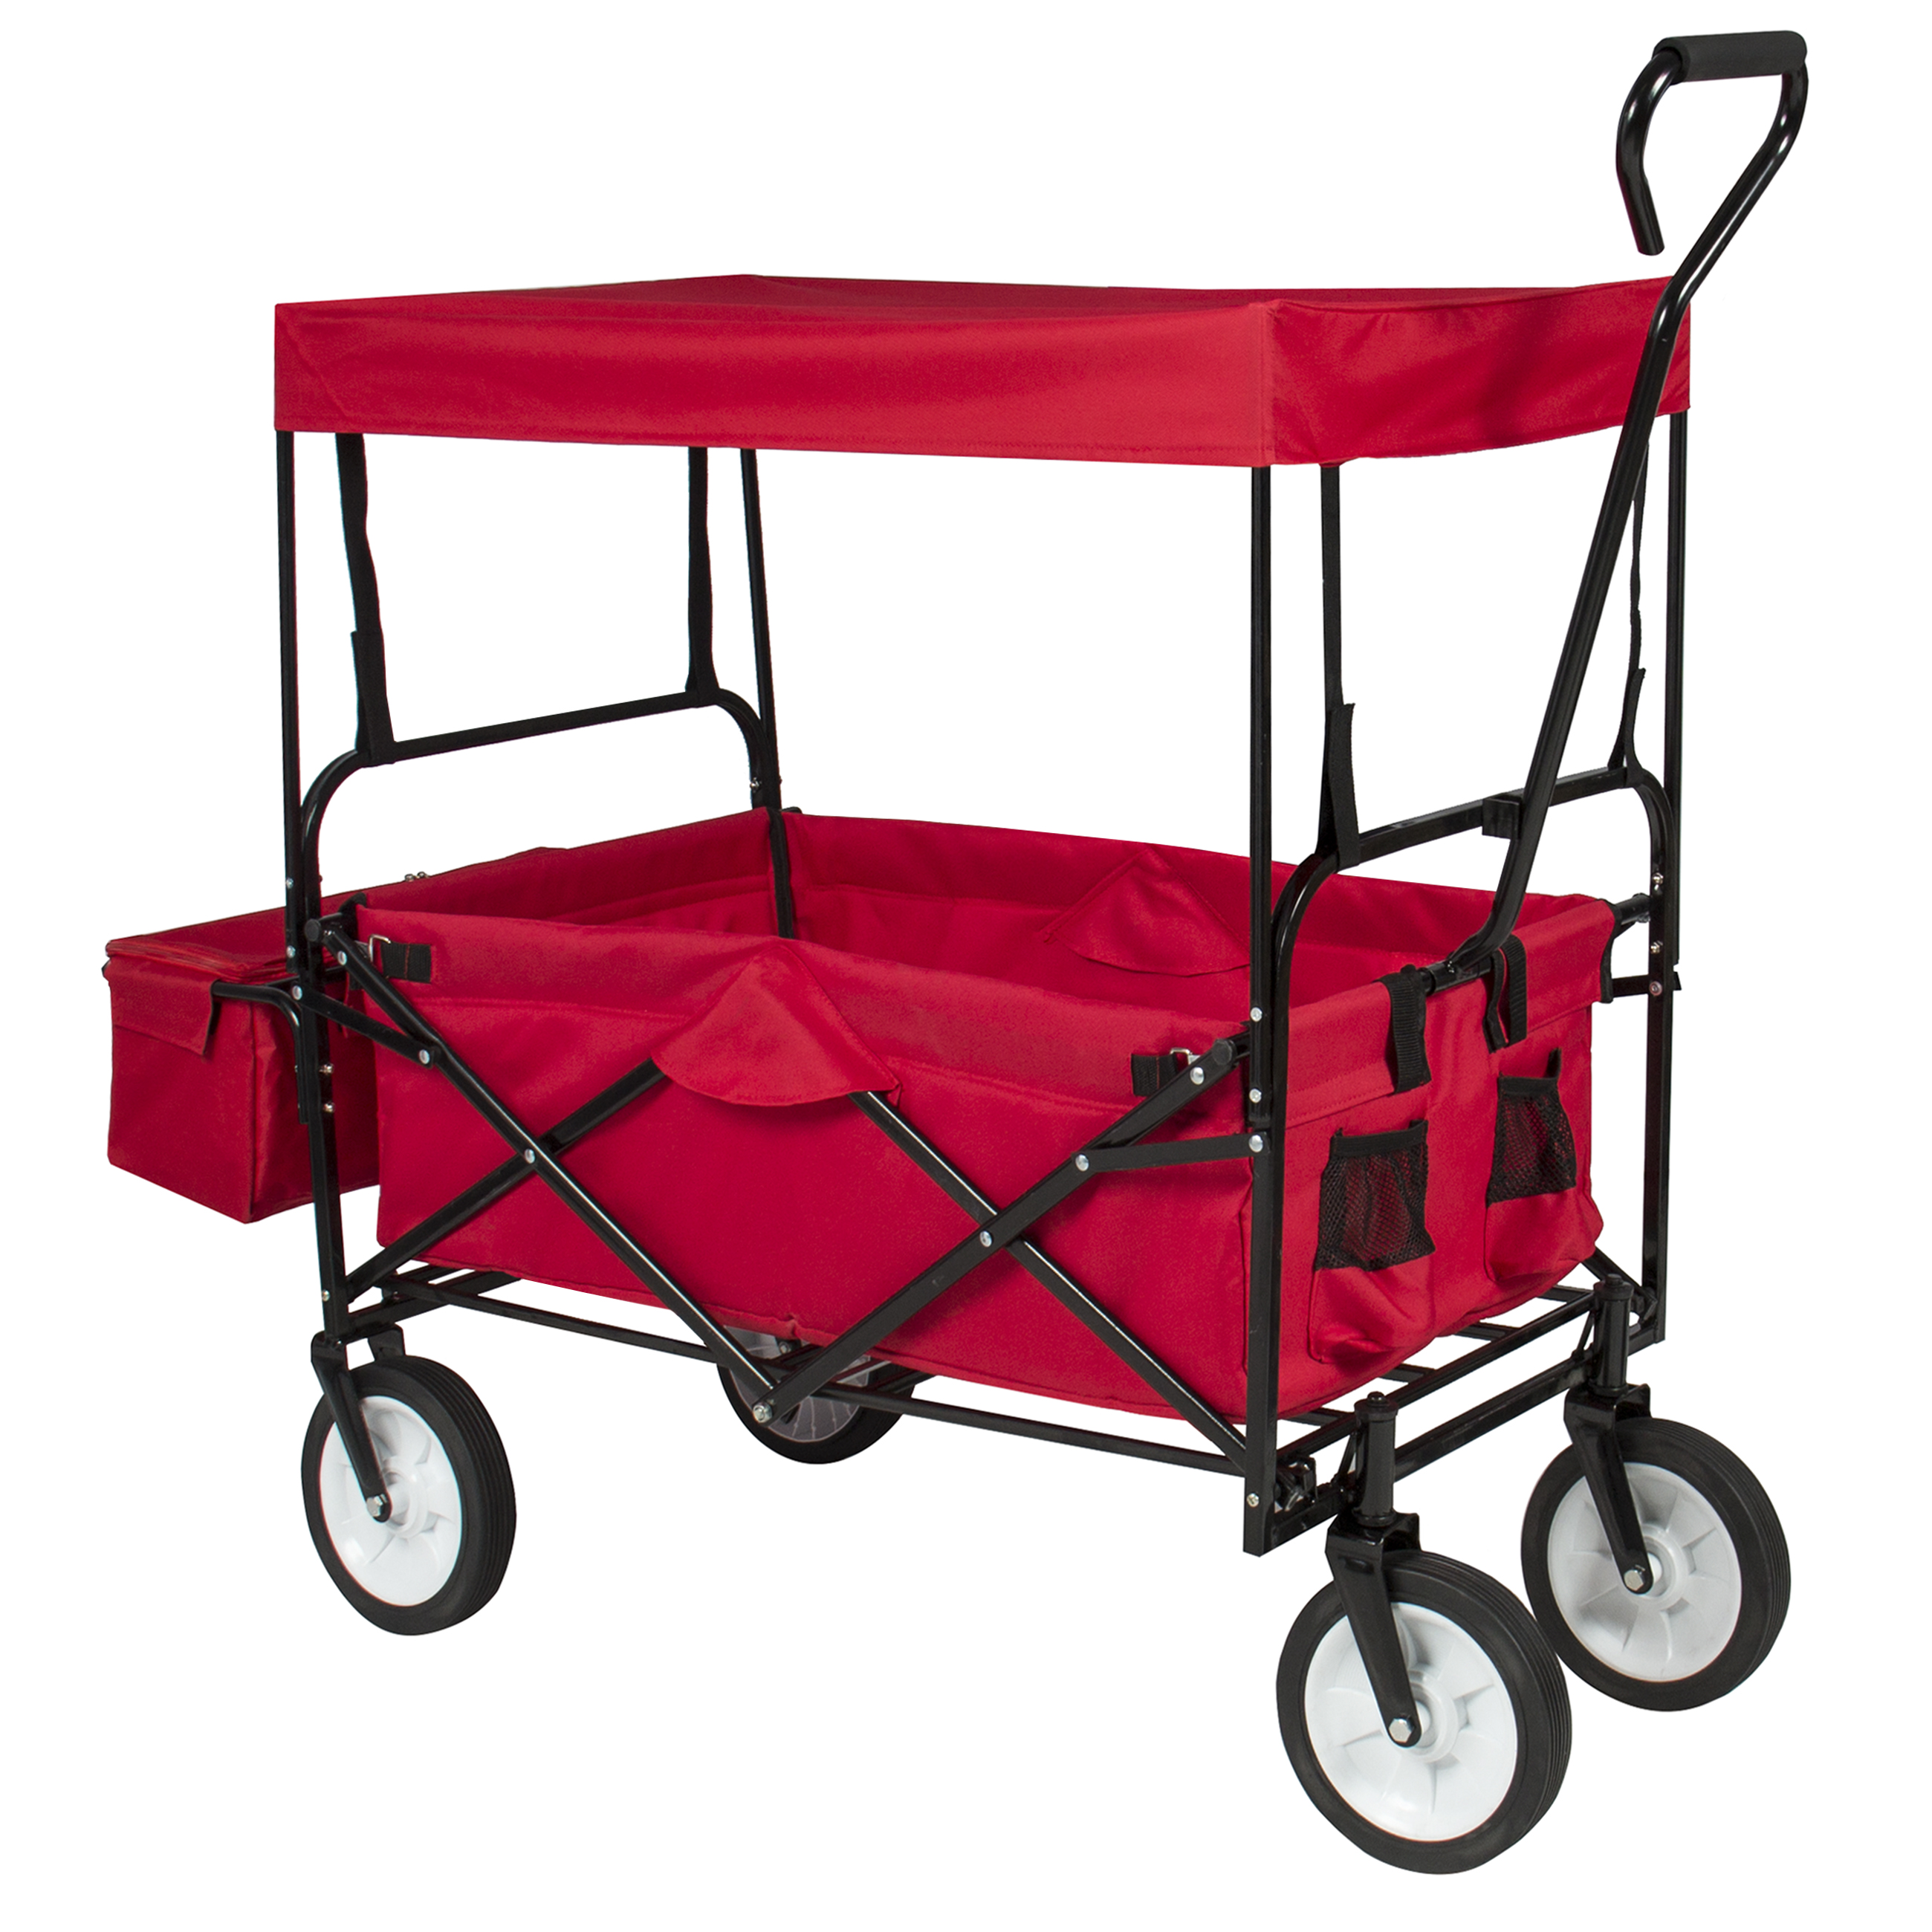 Best Choice Products Folding Wagon W/ Canopy Garden Utility Travel Collapsible Cart Outdoor Yard Home